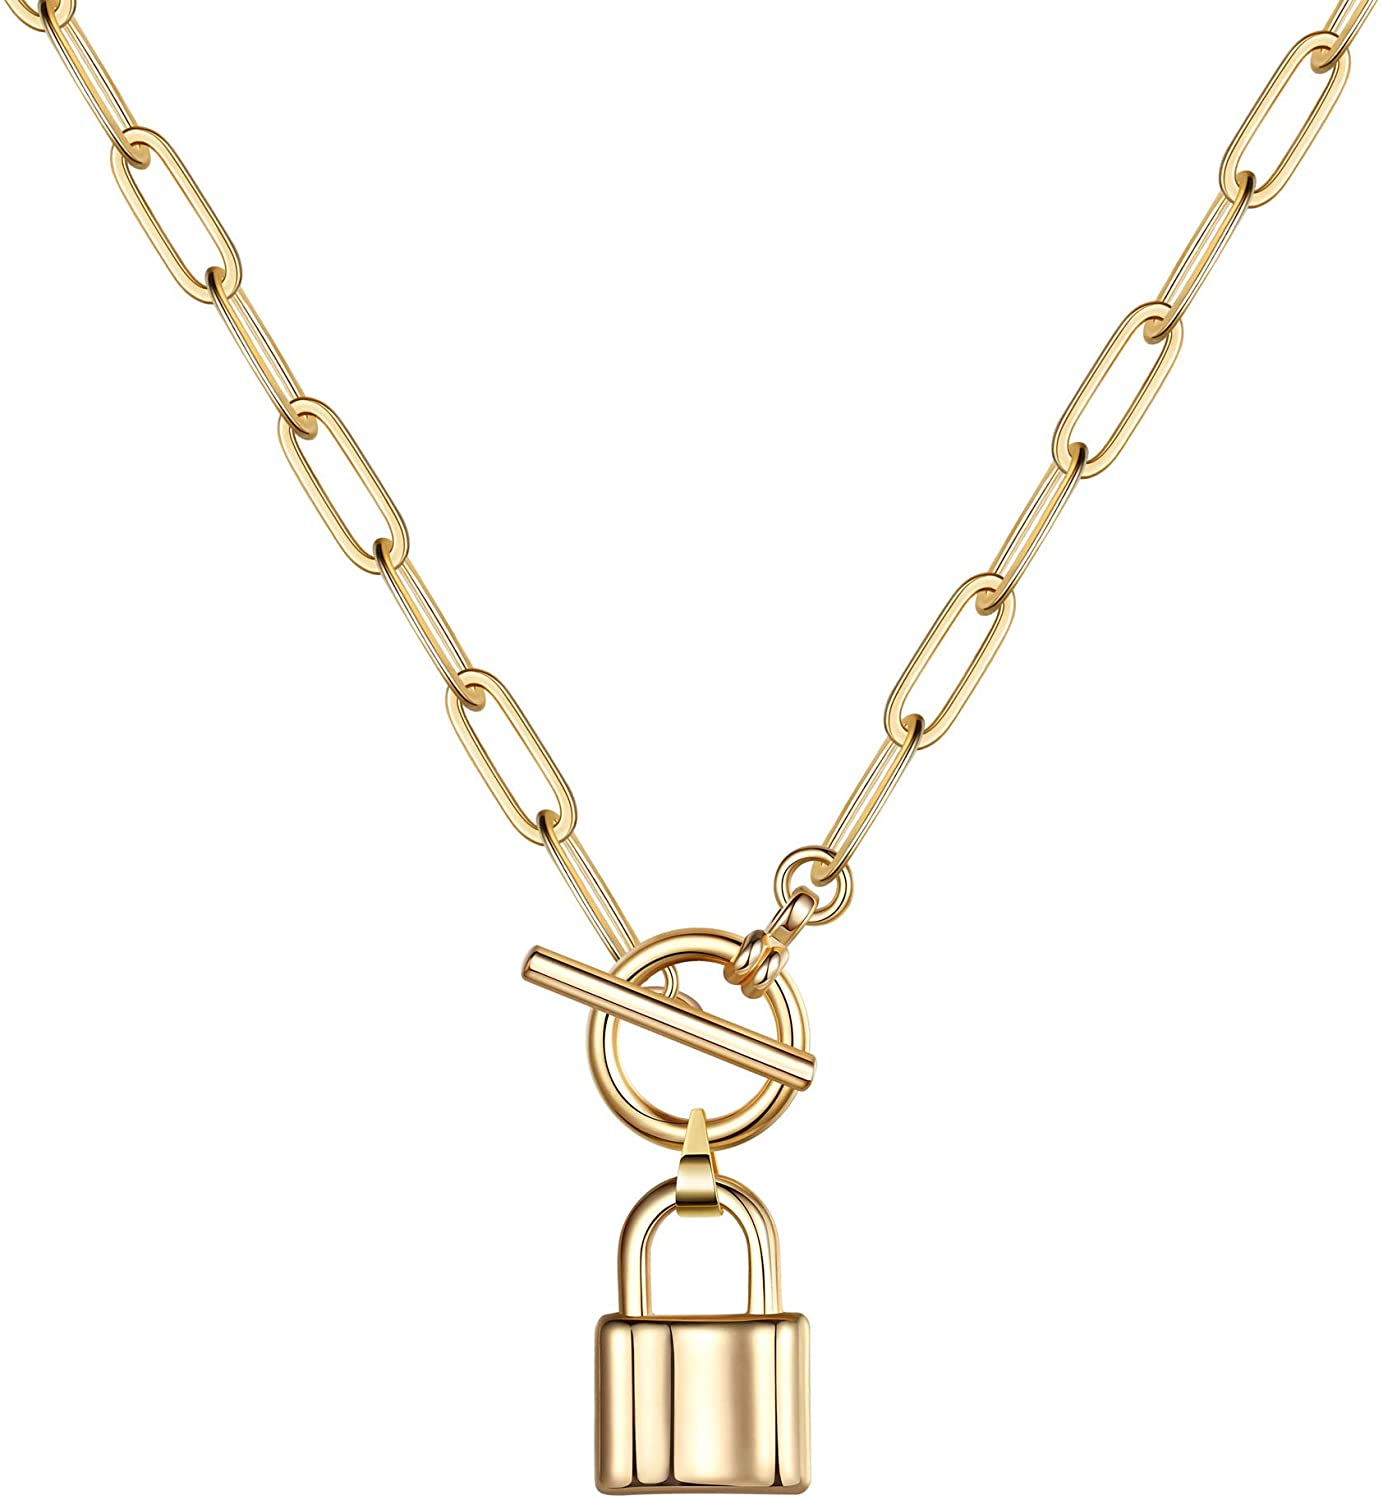 Turandoss Gold Necklaces for Women - 14K Gold Plated Lock Evil Eye Medallion Vintage Coin Necklace Bee Sun Moon Shell Gold Chain Necklace Layered Paperclip Chain Necklaces for Women Jewelry Gifts